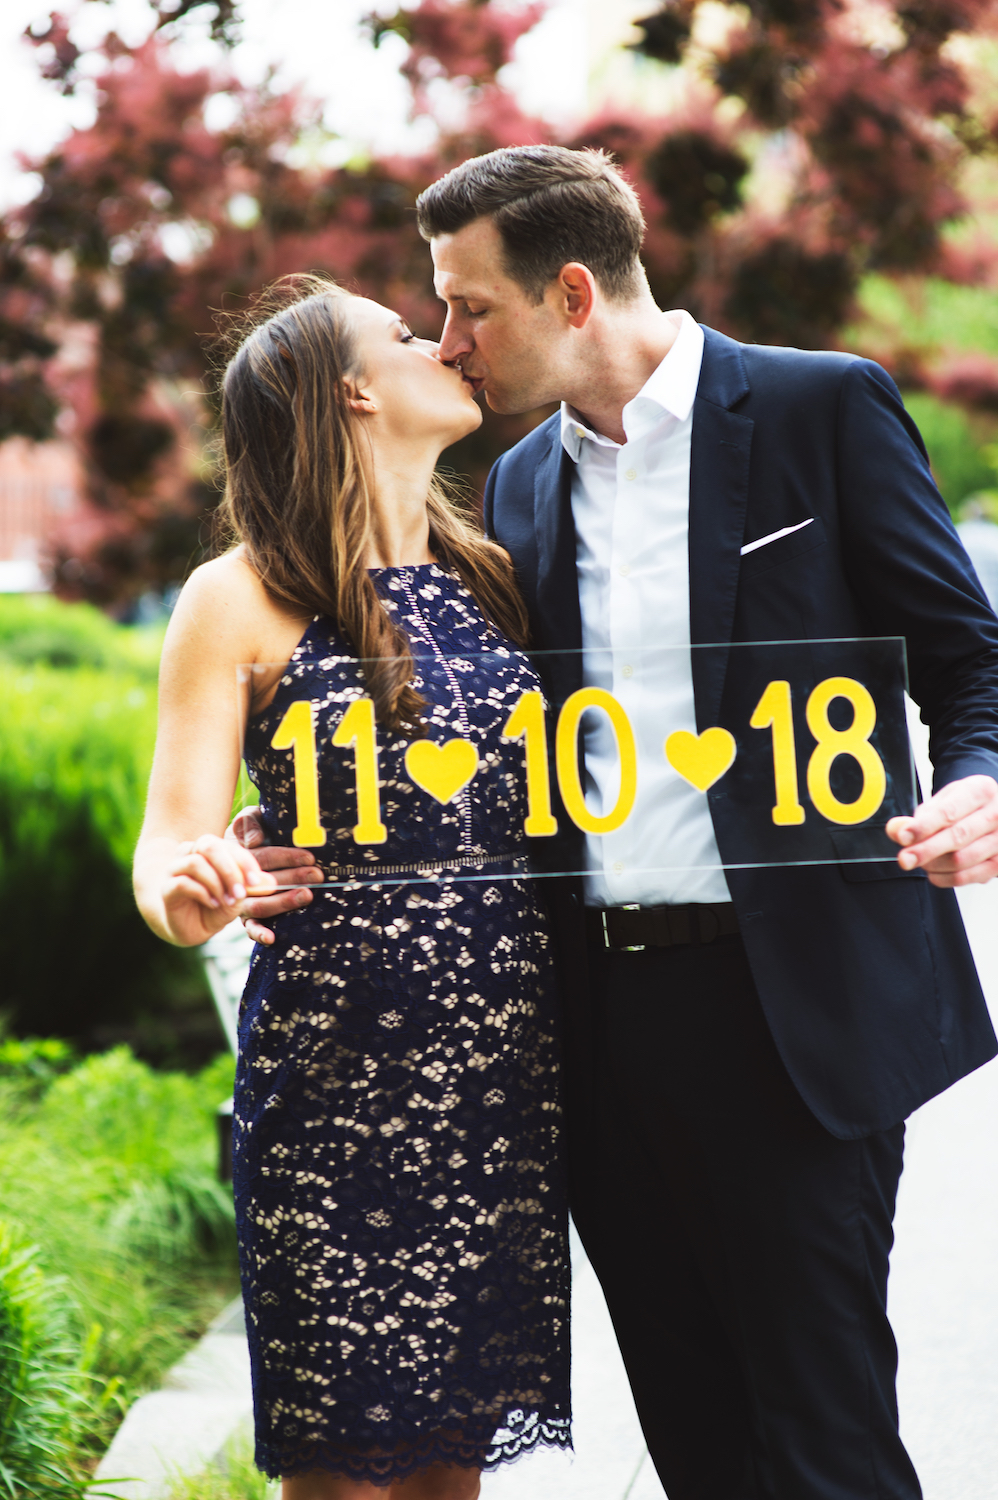 kayla-&-mike-kissing-while-holding-wedding-date-sign-nyc-nj-engagement-photos